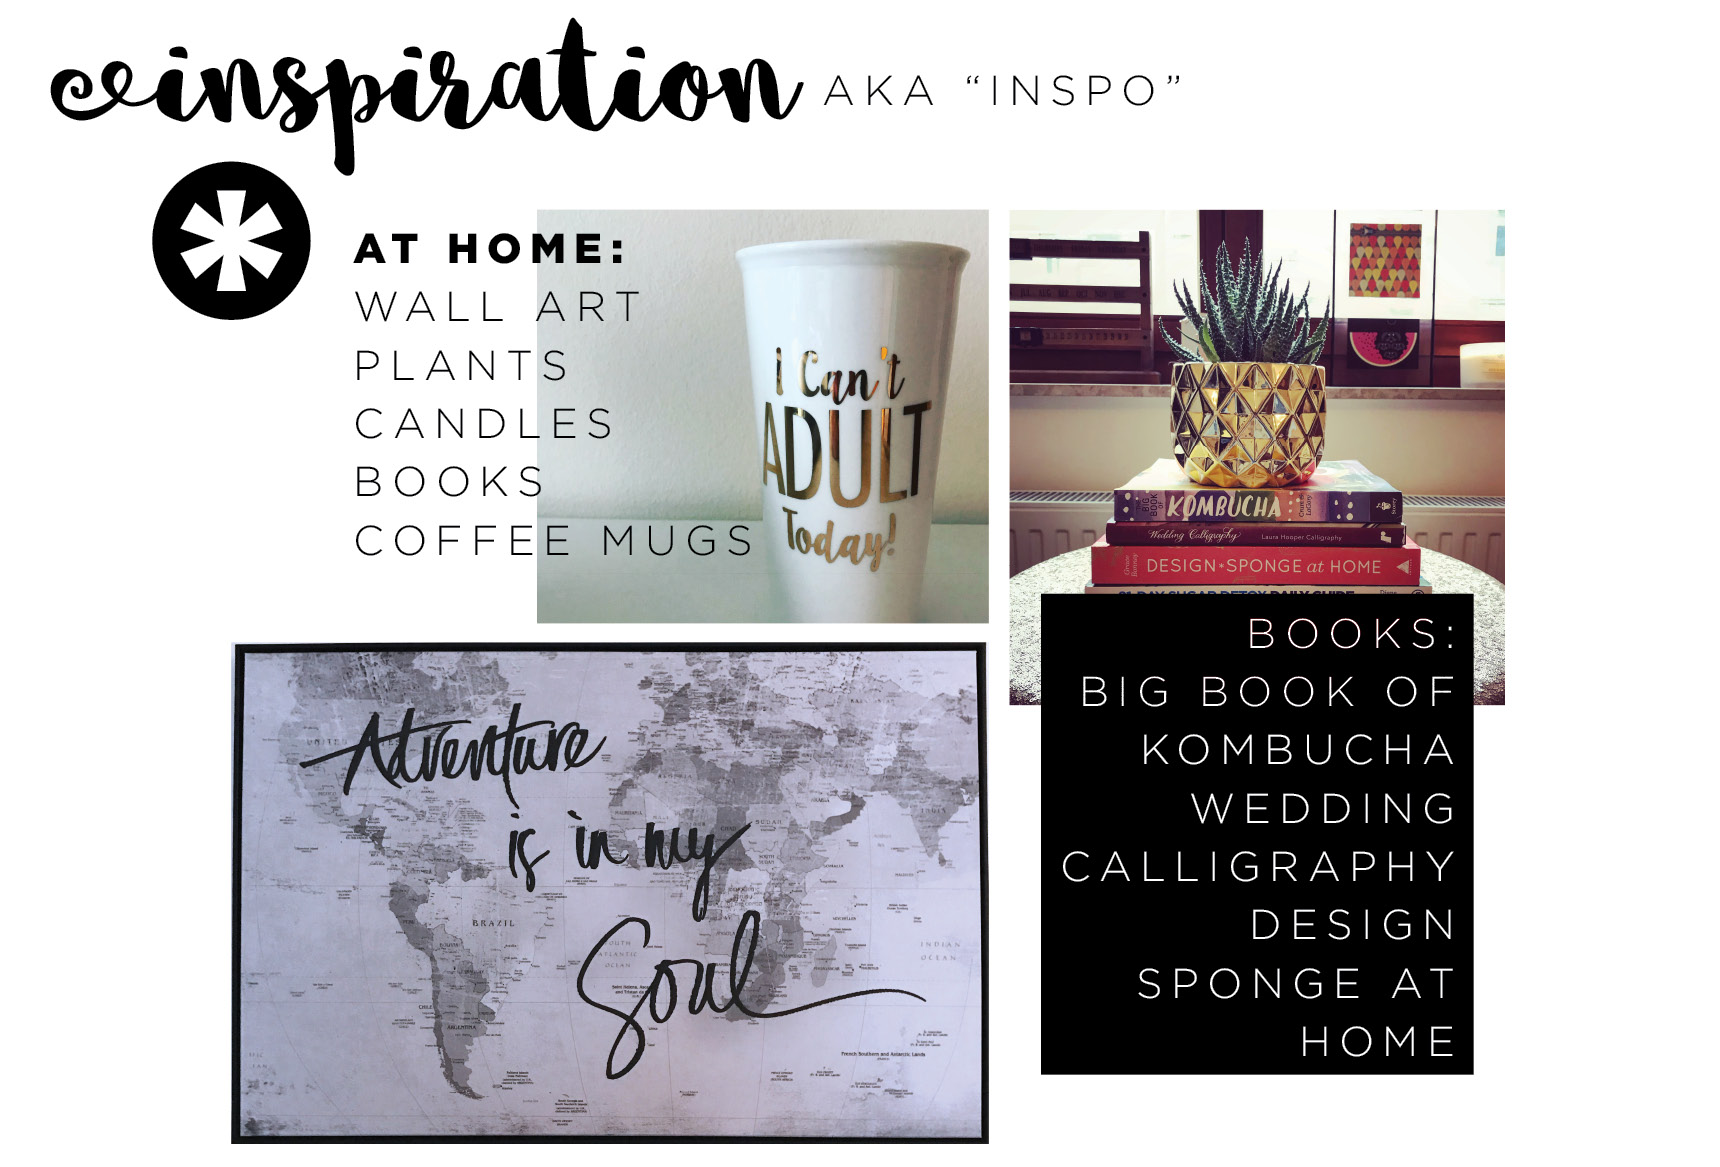 Inspiration at home graphic